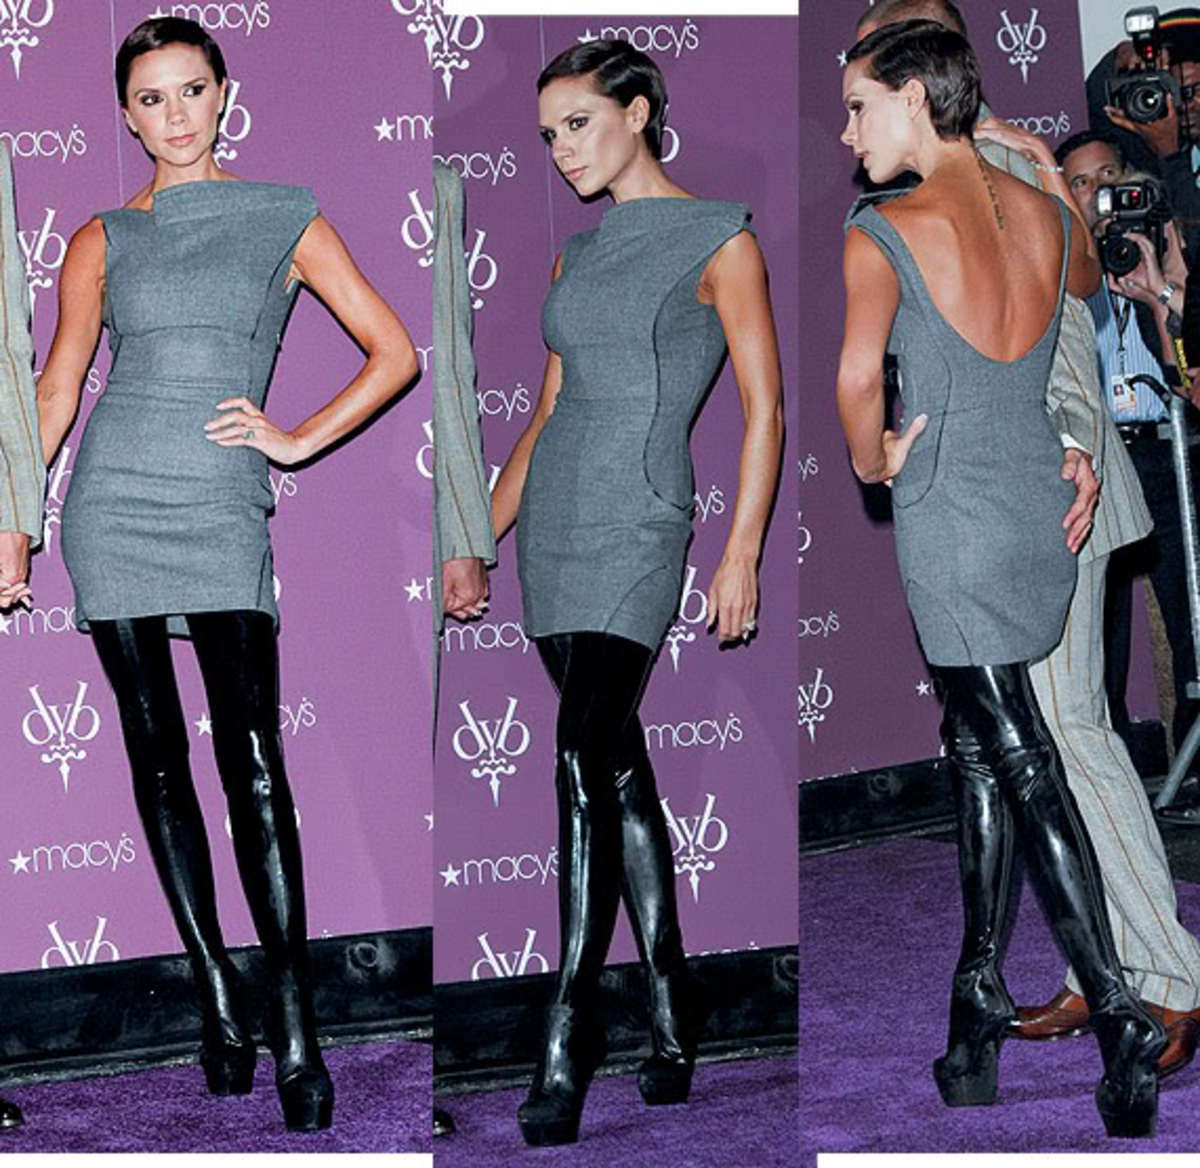 how-to-wear-and-care-for-your-latex-clothing